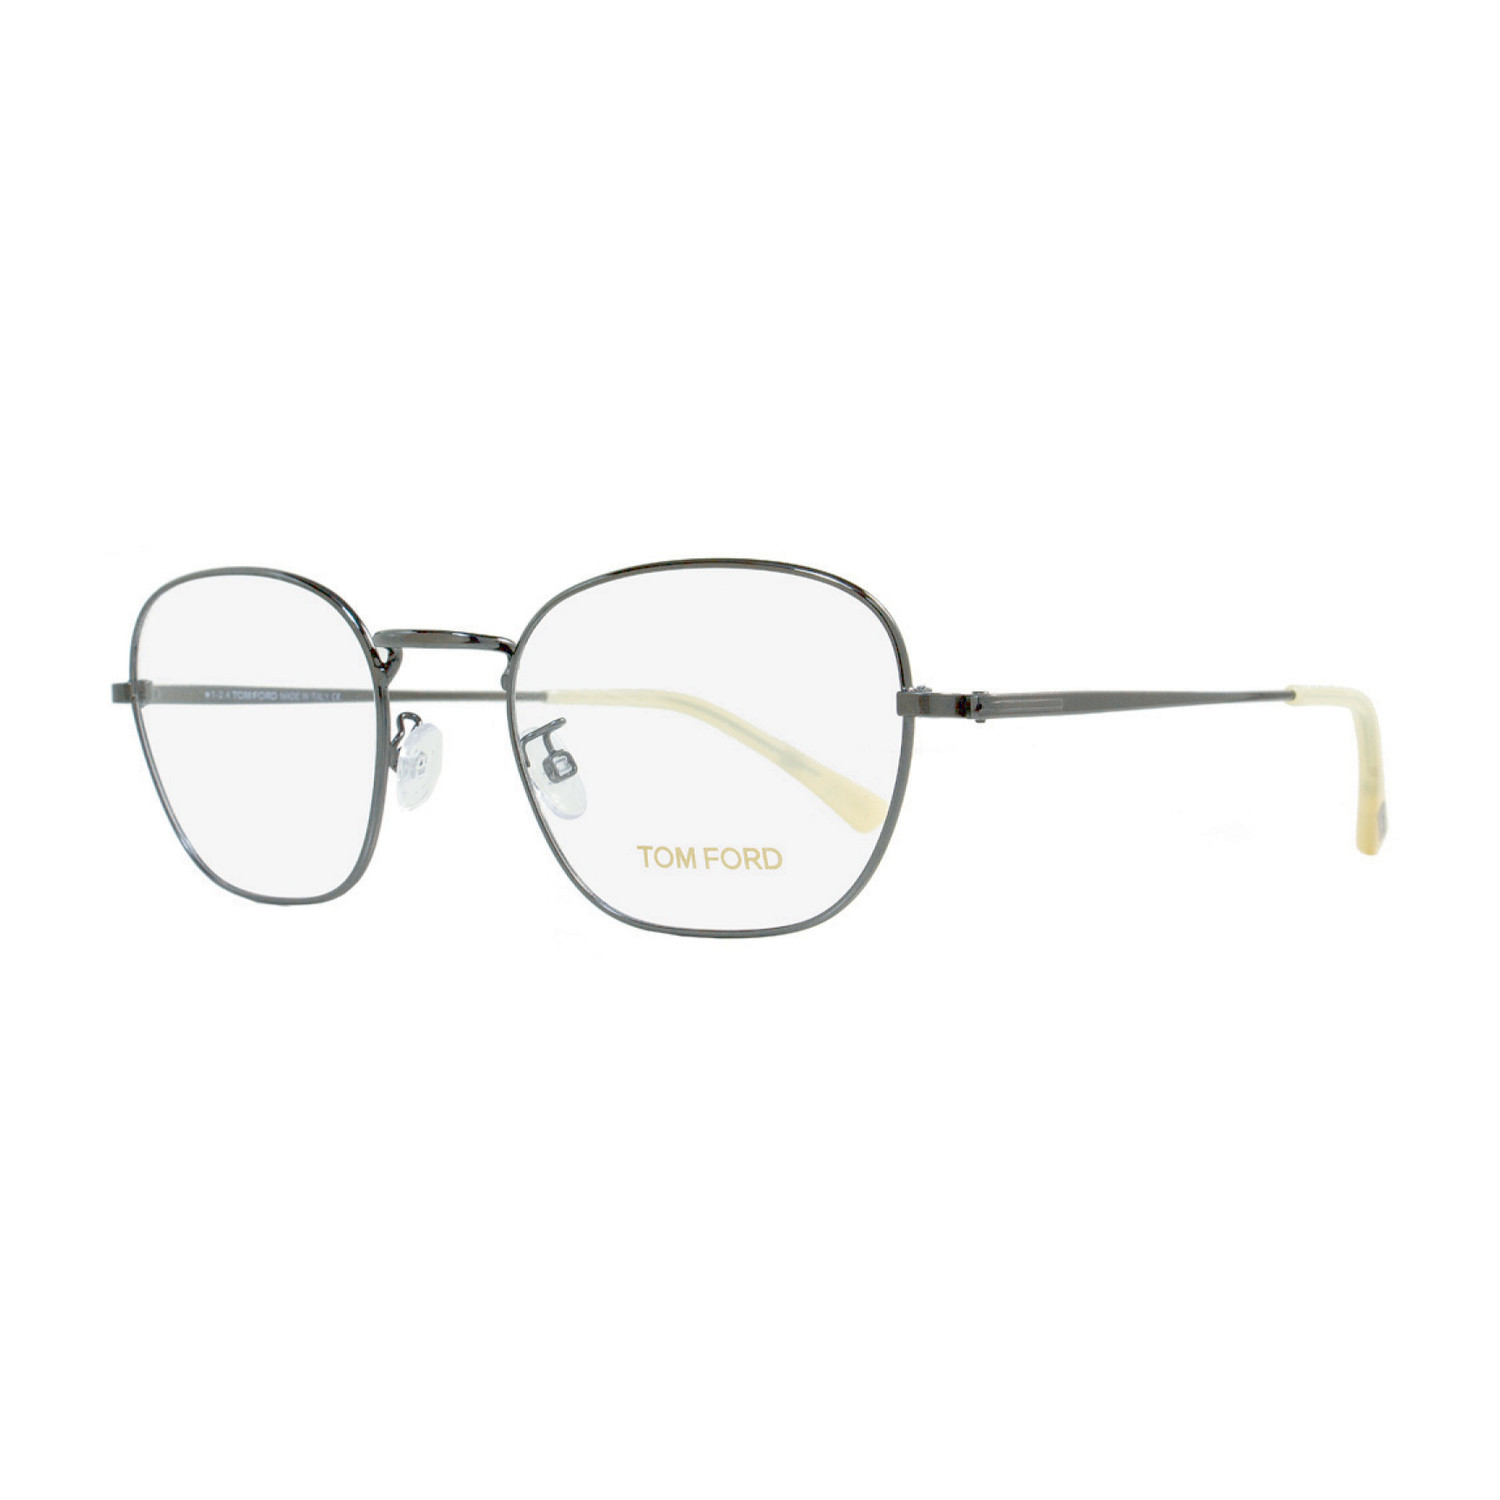 7dfc0ef896 D2de94f07e7a6654ff22bd5eb8bae2be medium. Unisex    Oval Eyeglasses    Dark  Ruthenium + White Horn